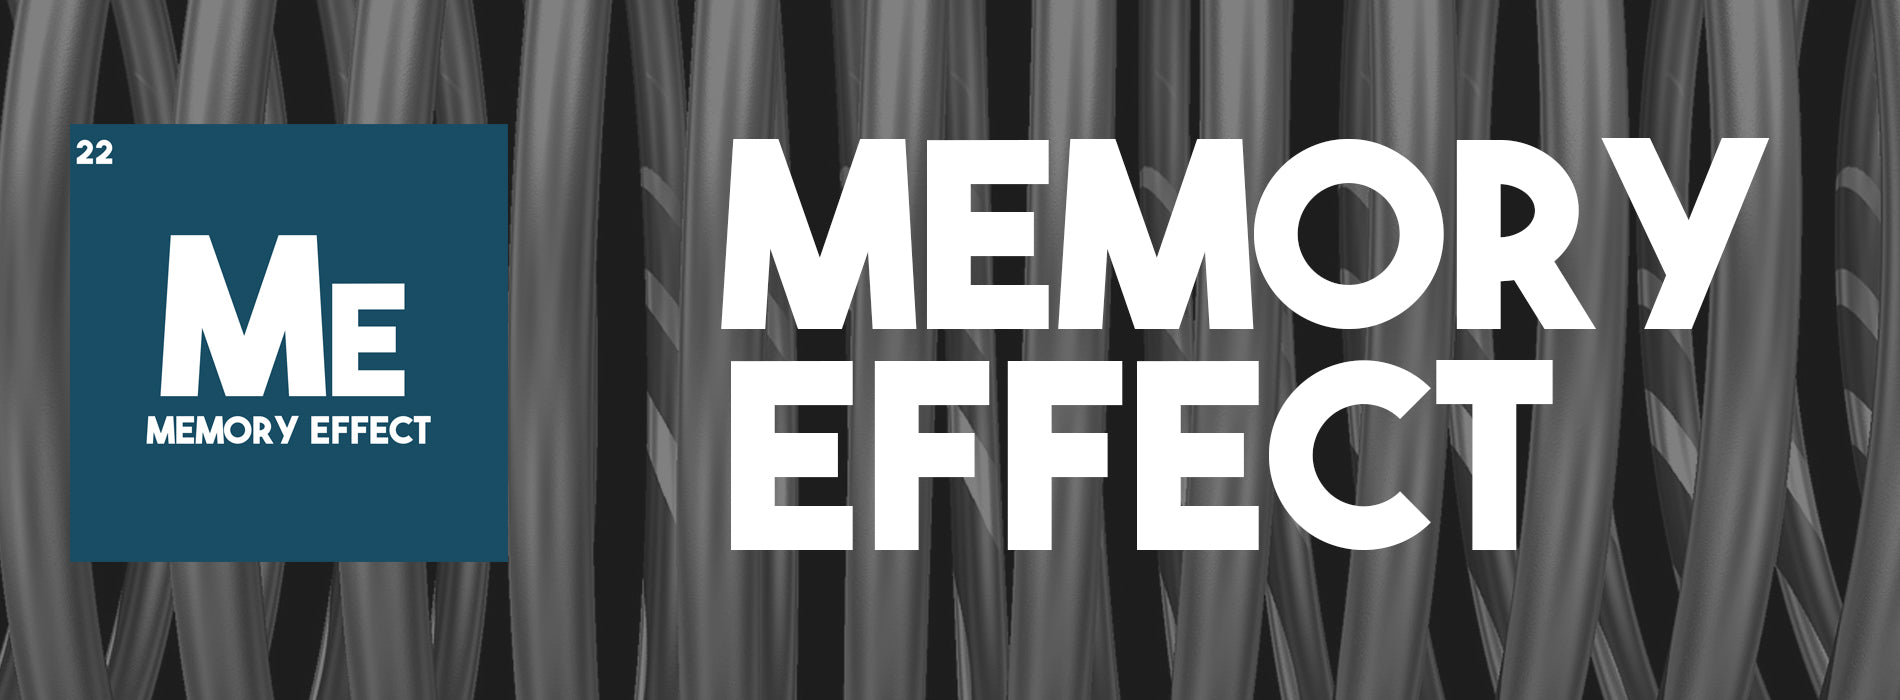 Memory Effect Banner